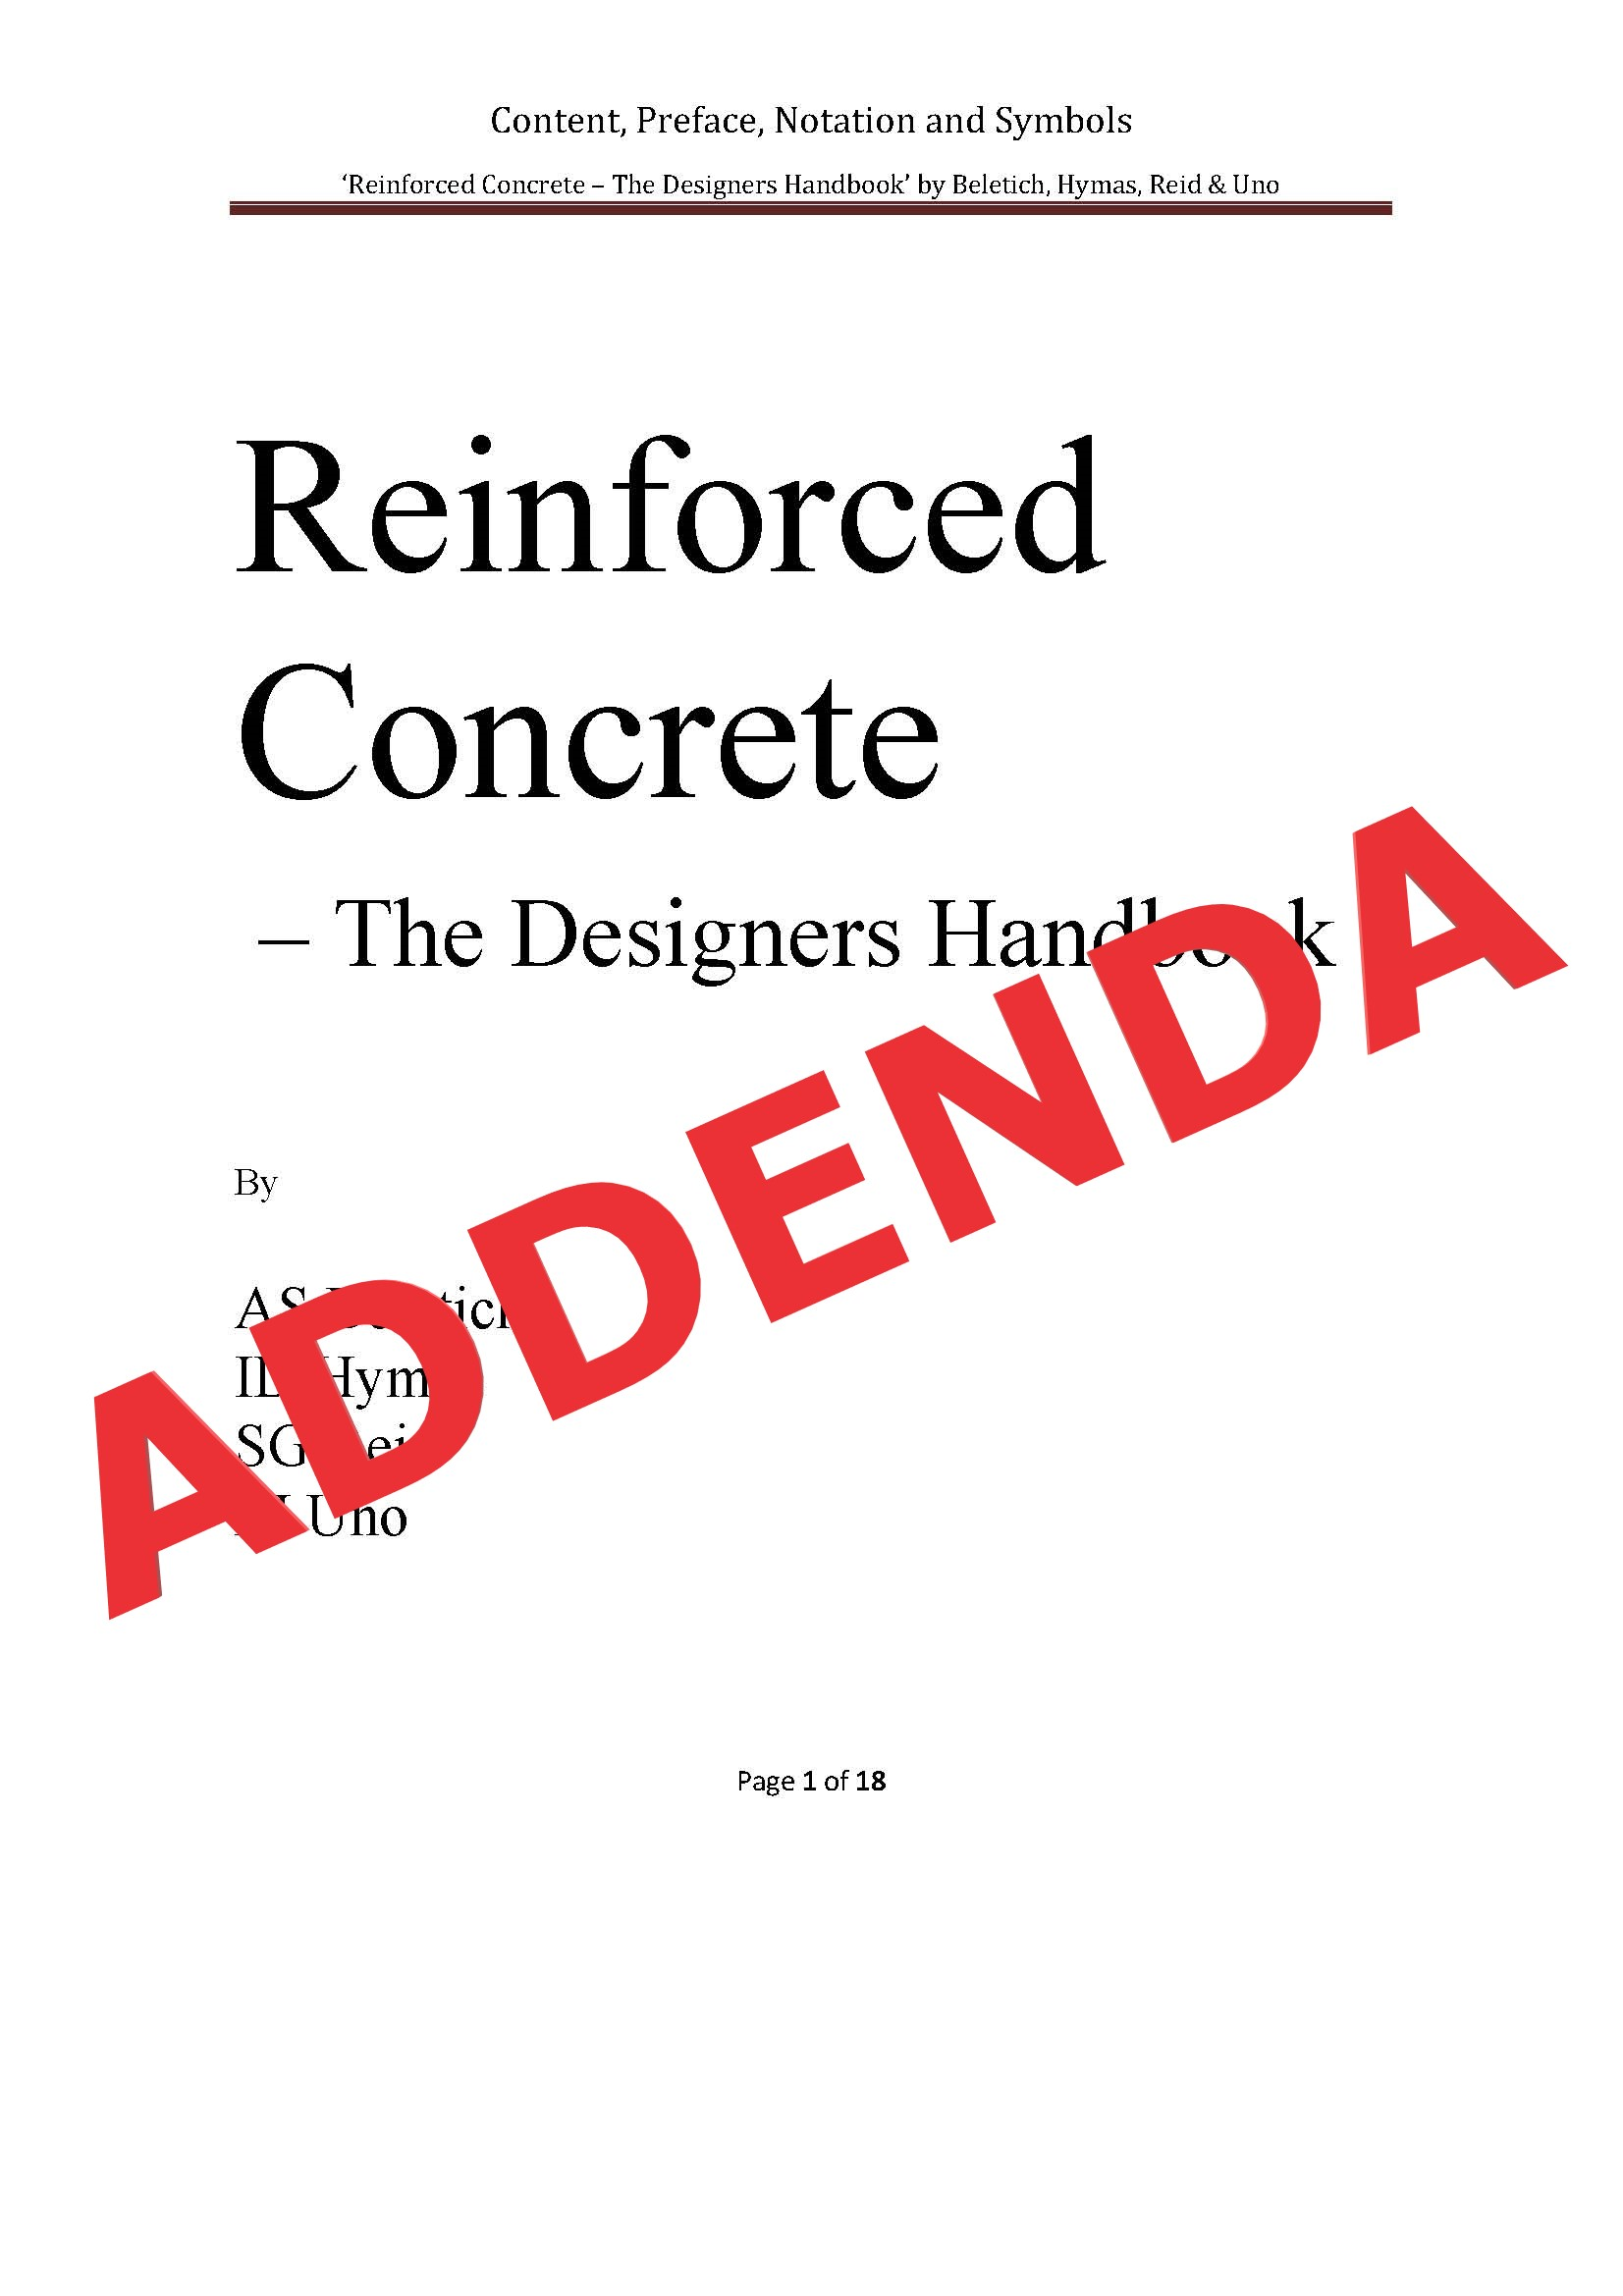 Addenda to 'Reinforced Concrete: The Designers Handbook'